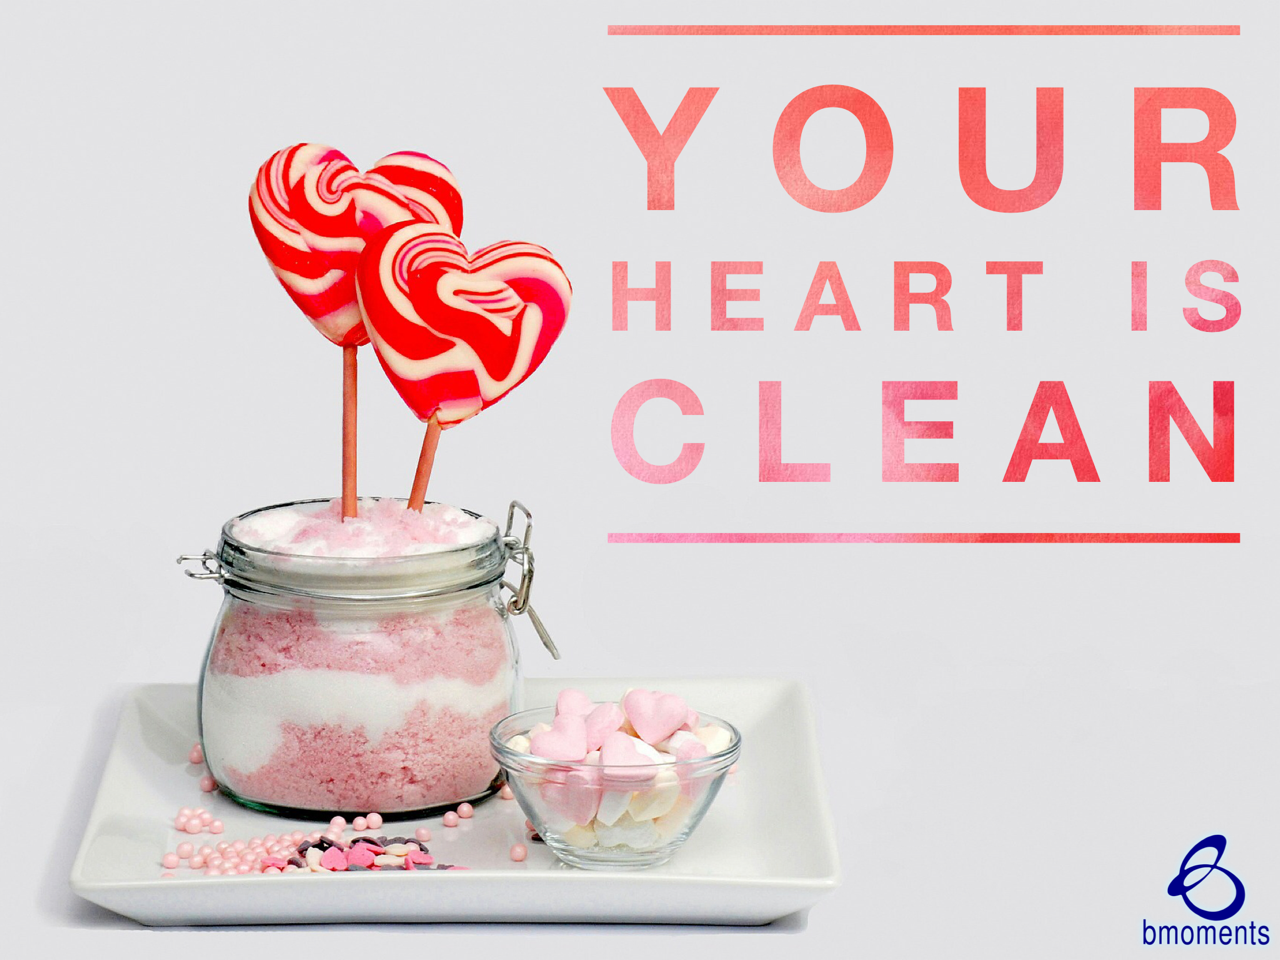 Ring in 2018 with a Clean Heart